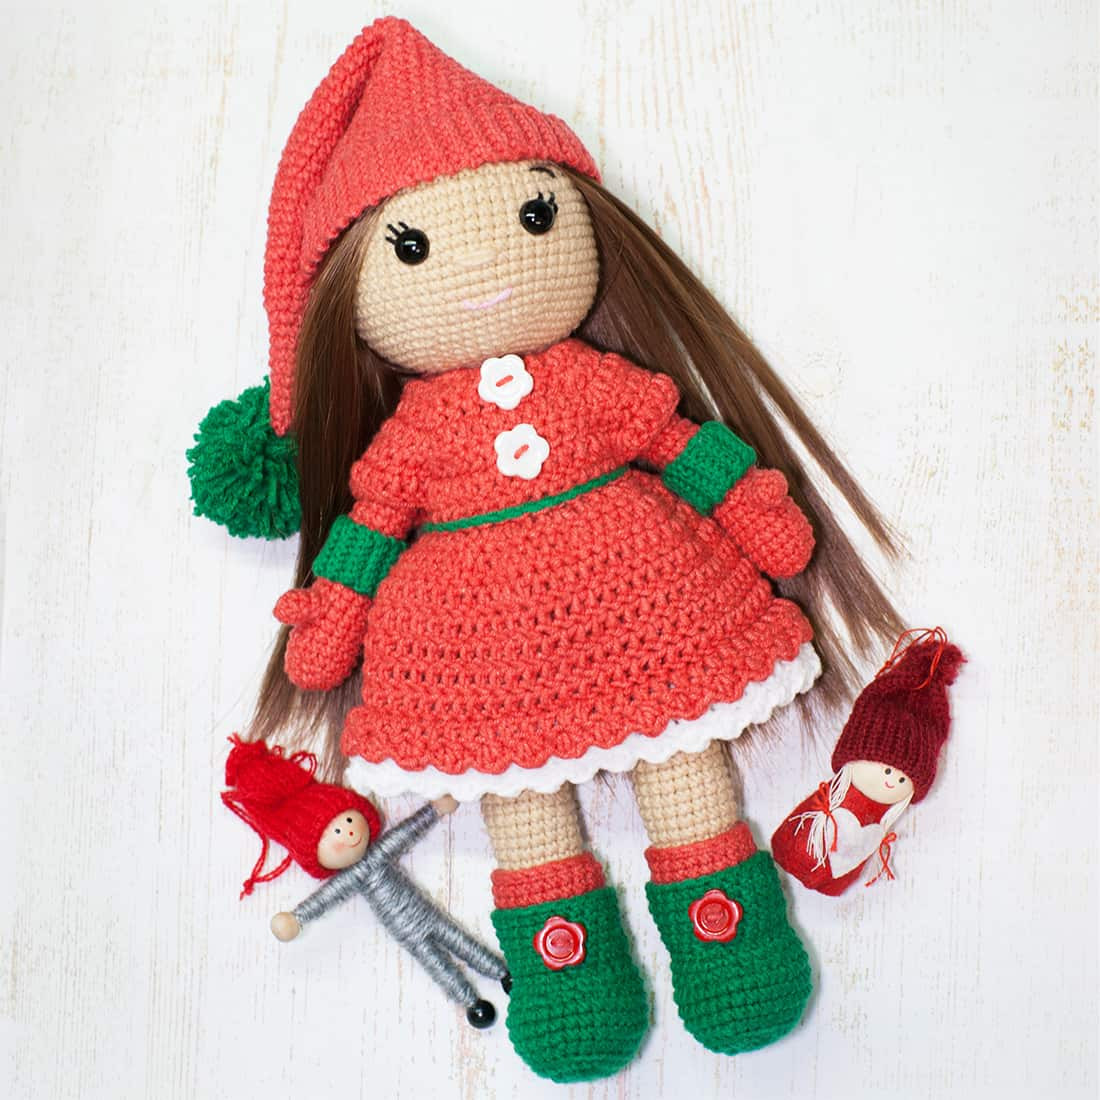 Doll Patterns New Christmas Doll Crochet Pattern Amigurumi today Of Doll Patterns Unique Knitting Patterns Dolls Clothes